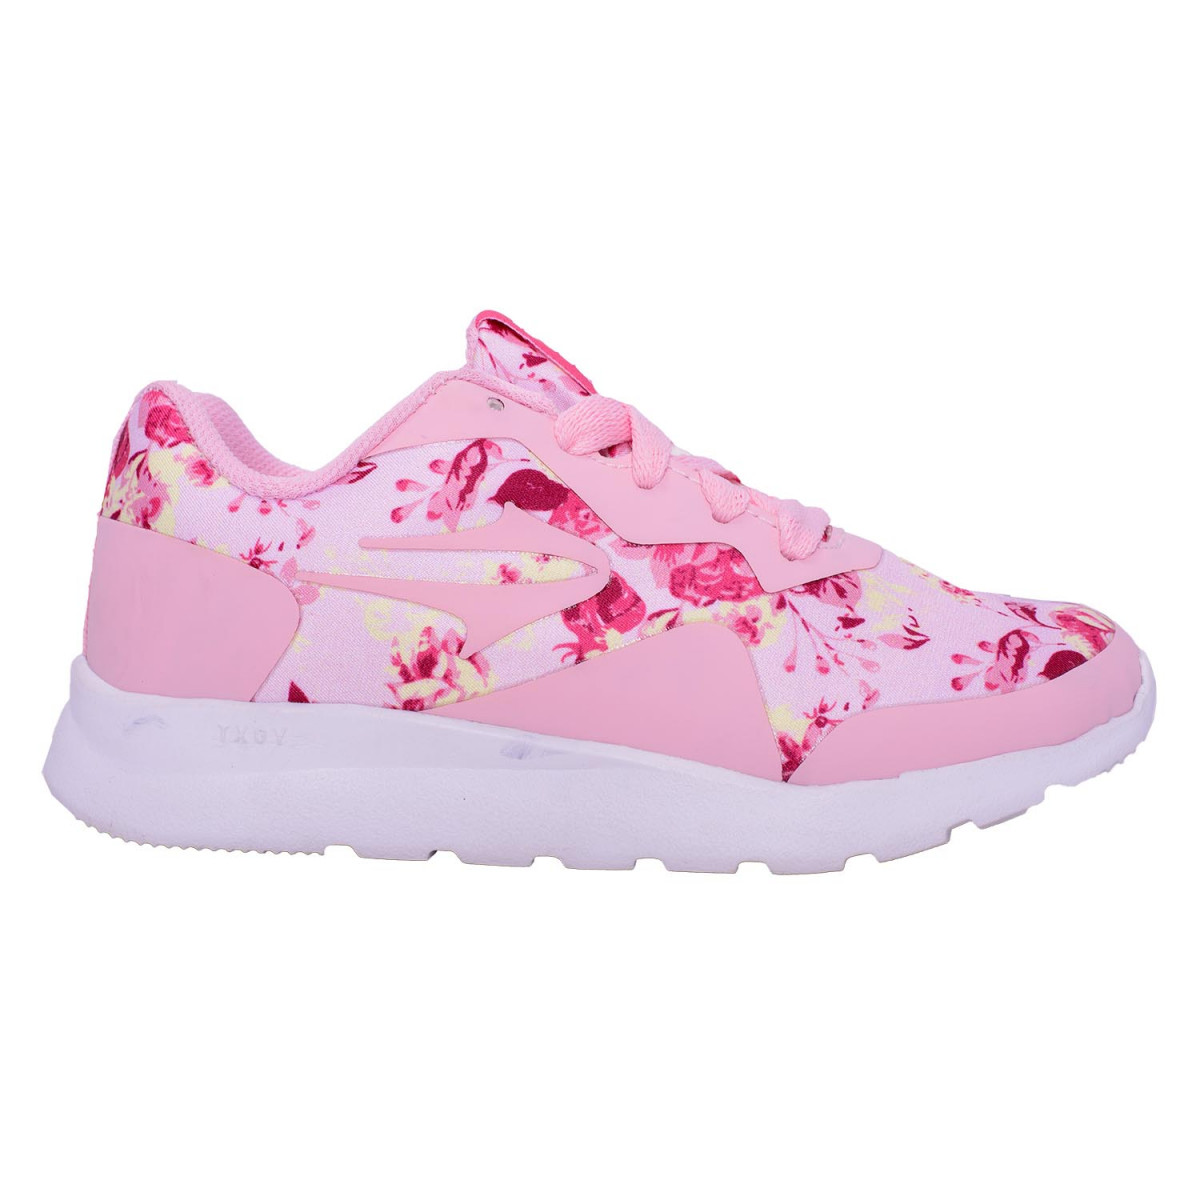 Zapatillas Topper Sweet Notae